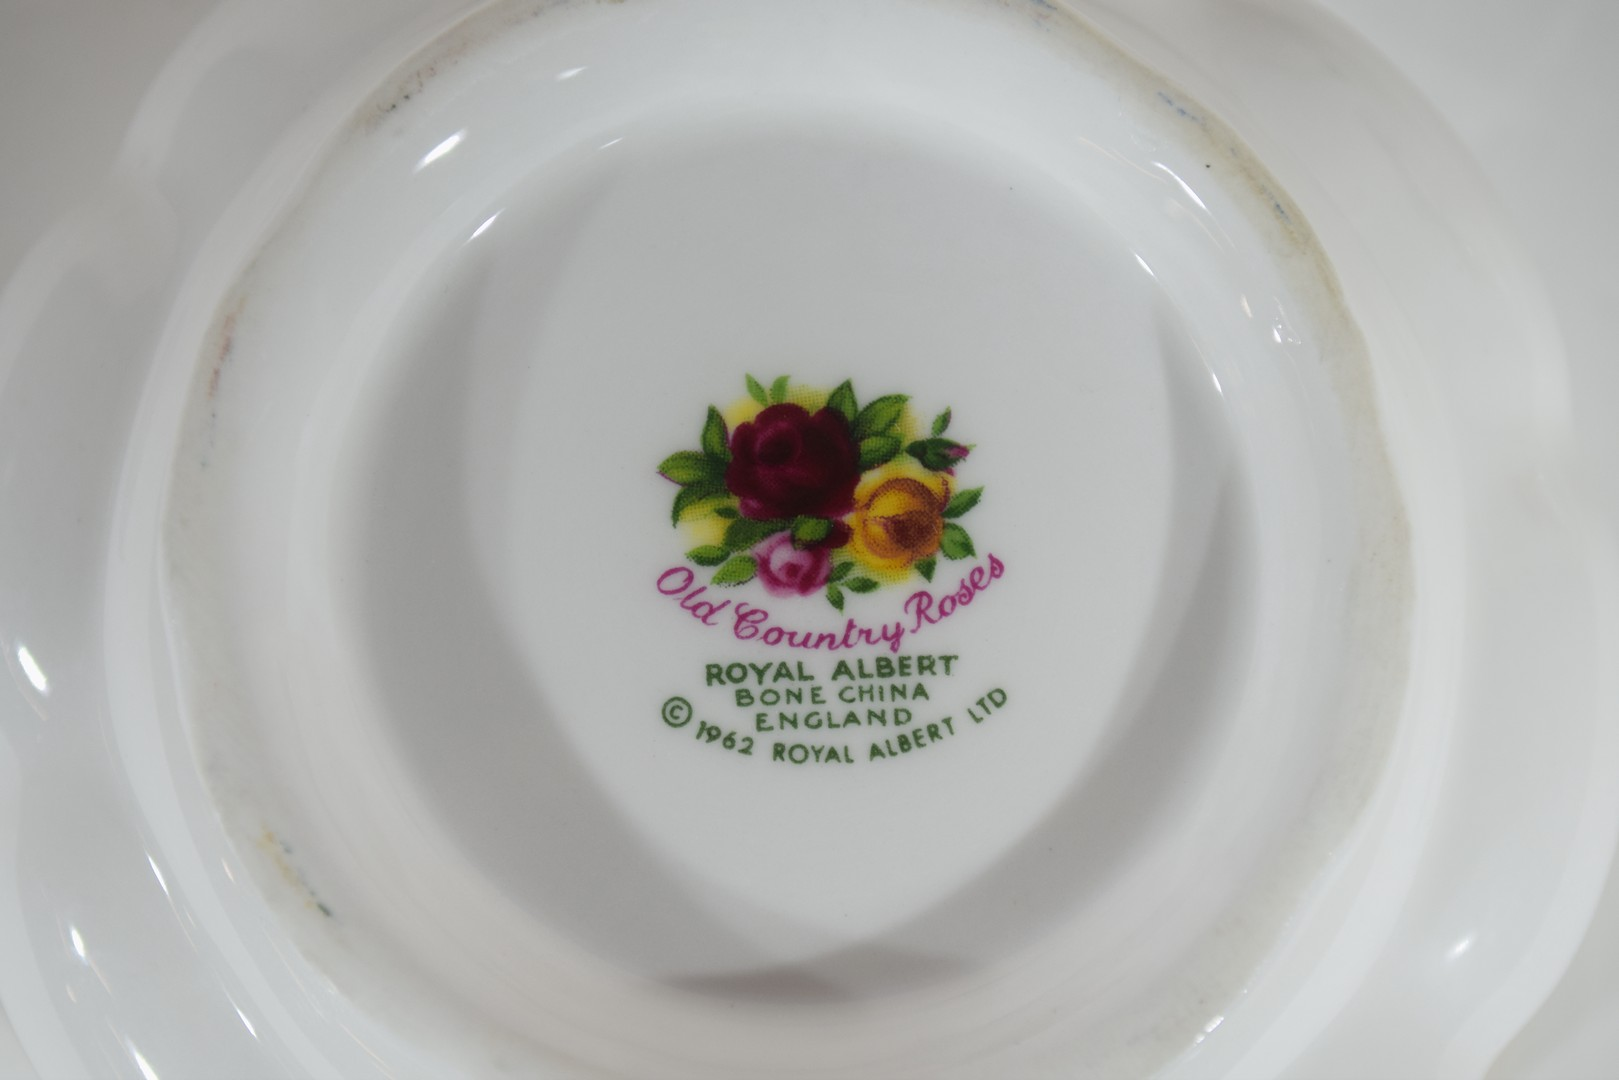 Royal Albert tea set in the Old Country Roses pattern - Image 3 of 4